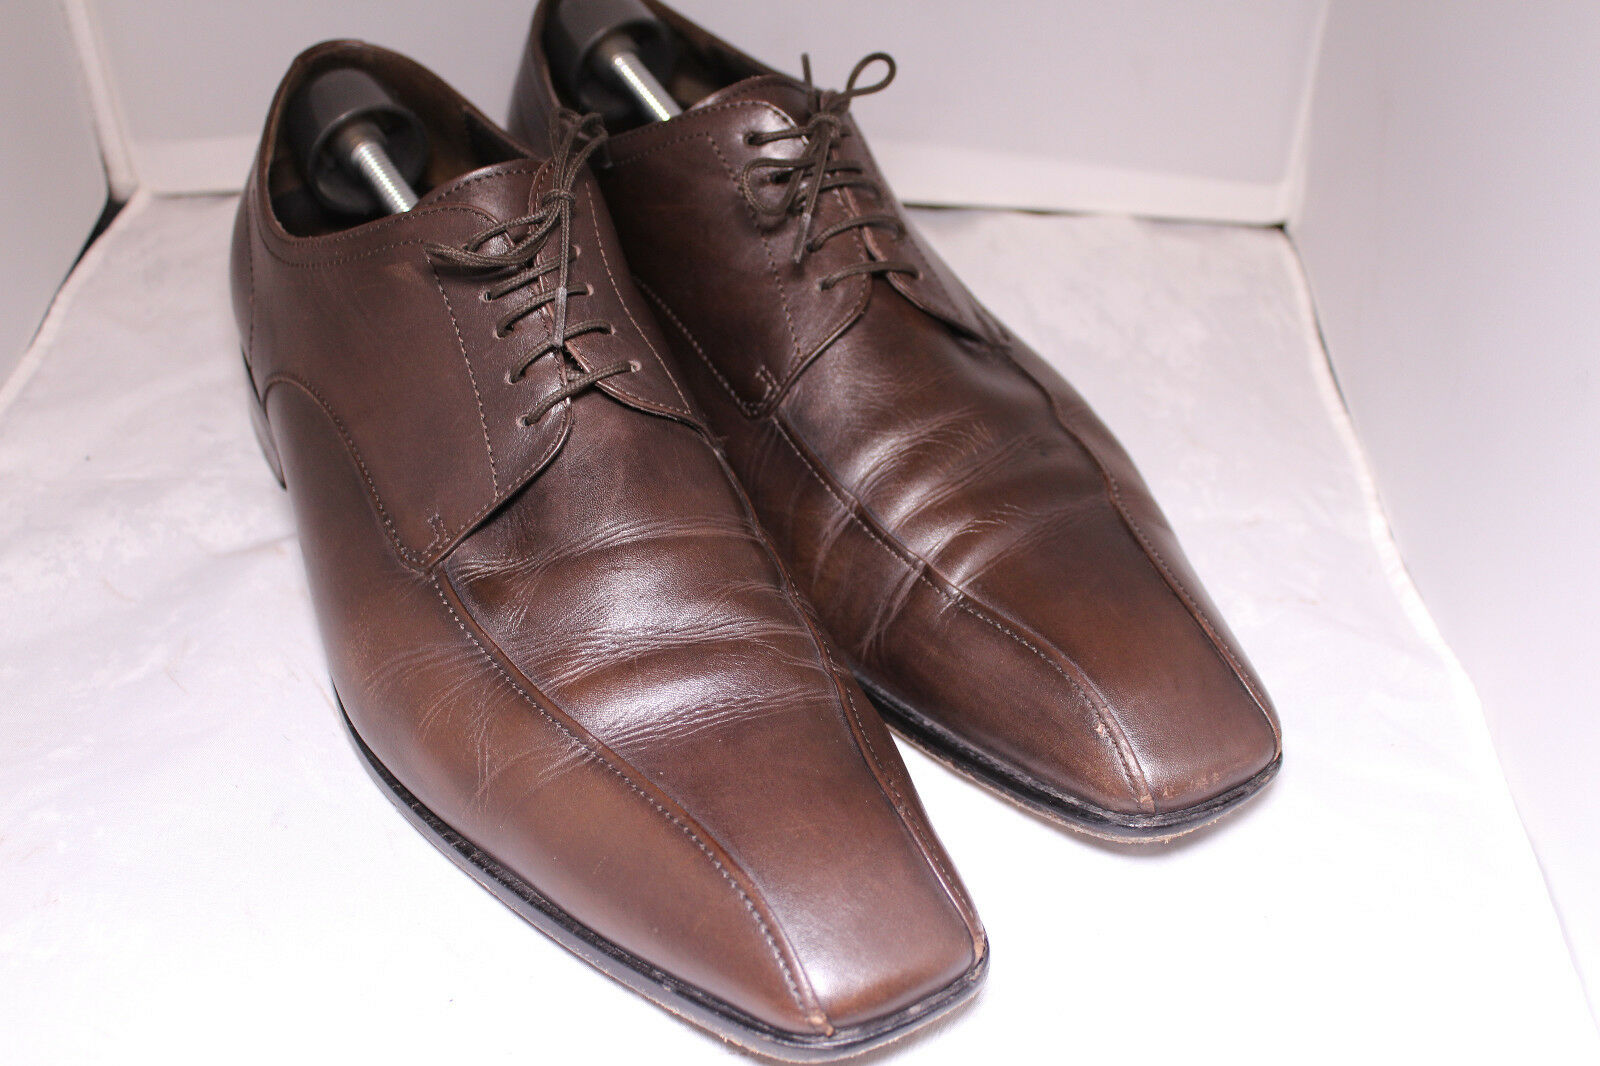 Hugo Boss Men Brown Laced Romes Vero Cuoio Leather Oxford Dress shoes Sz 12